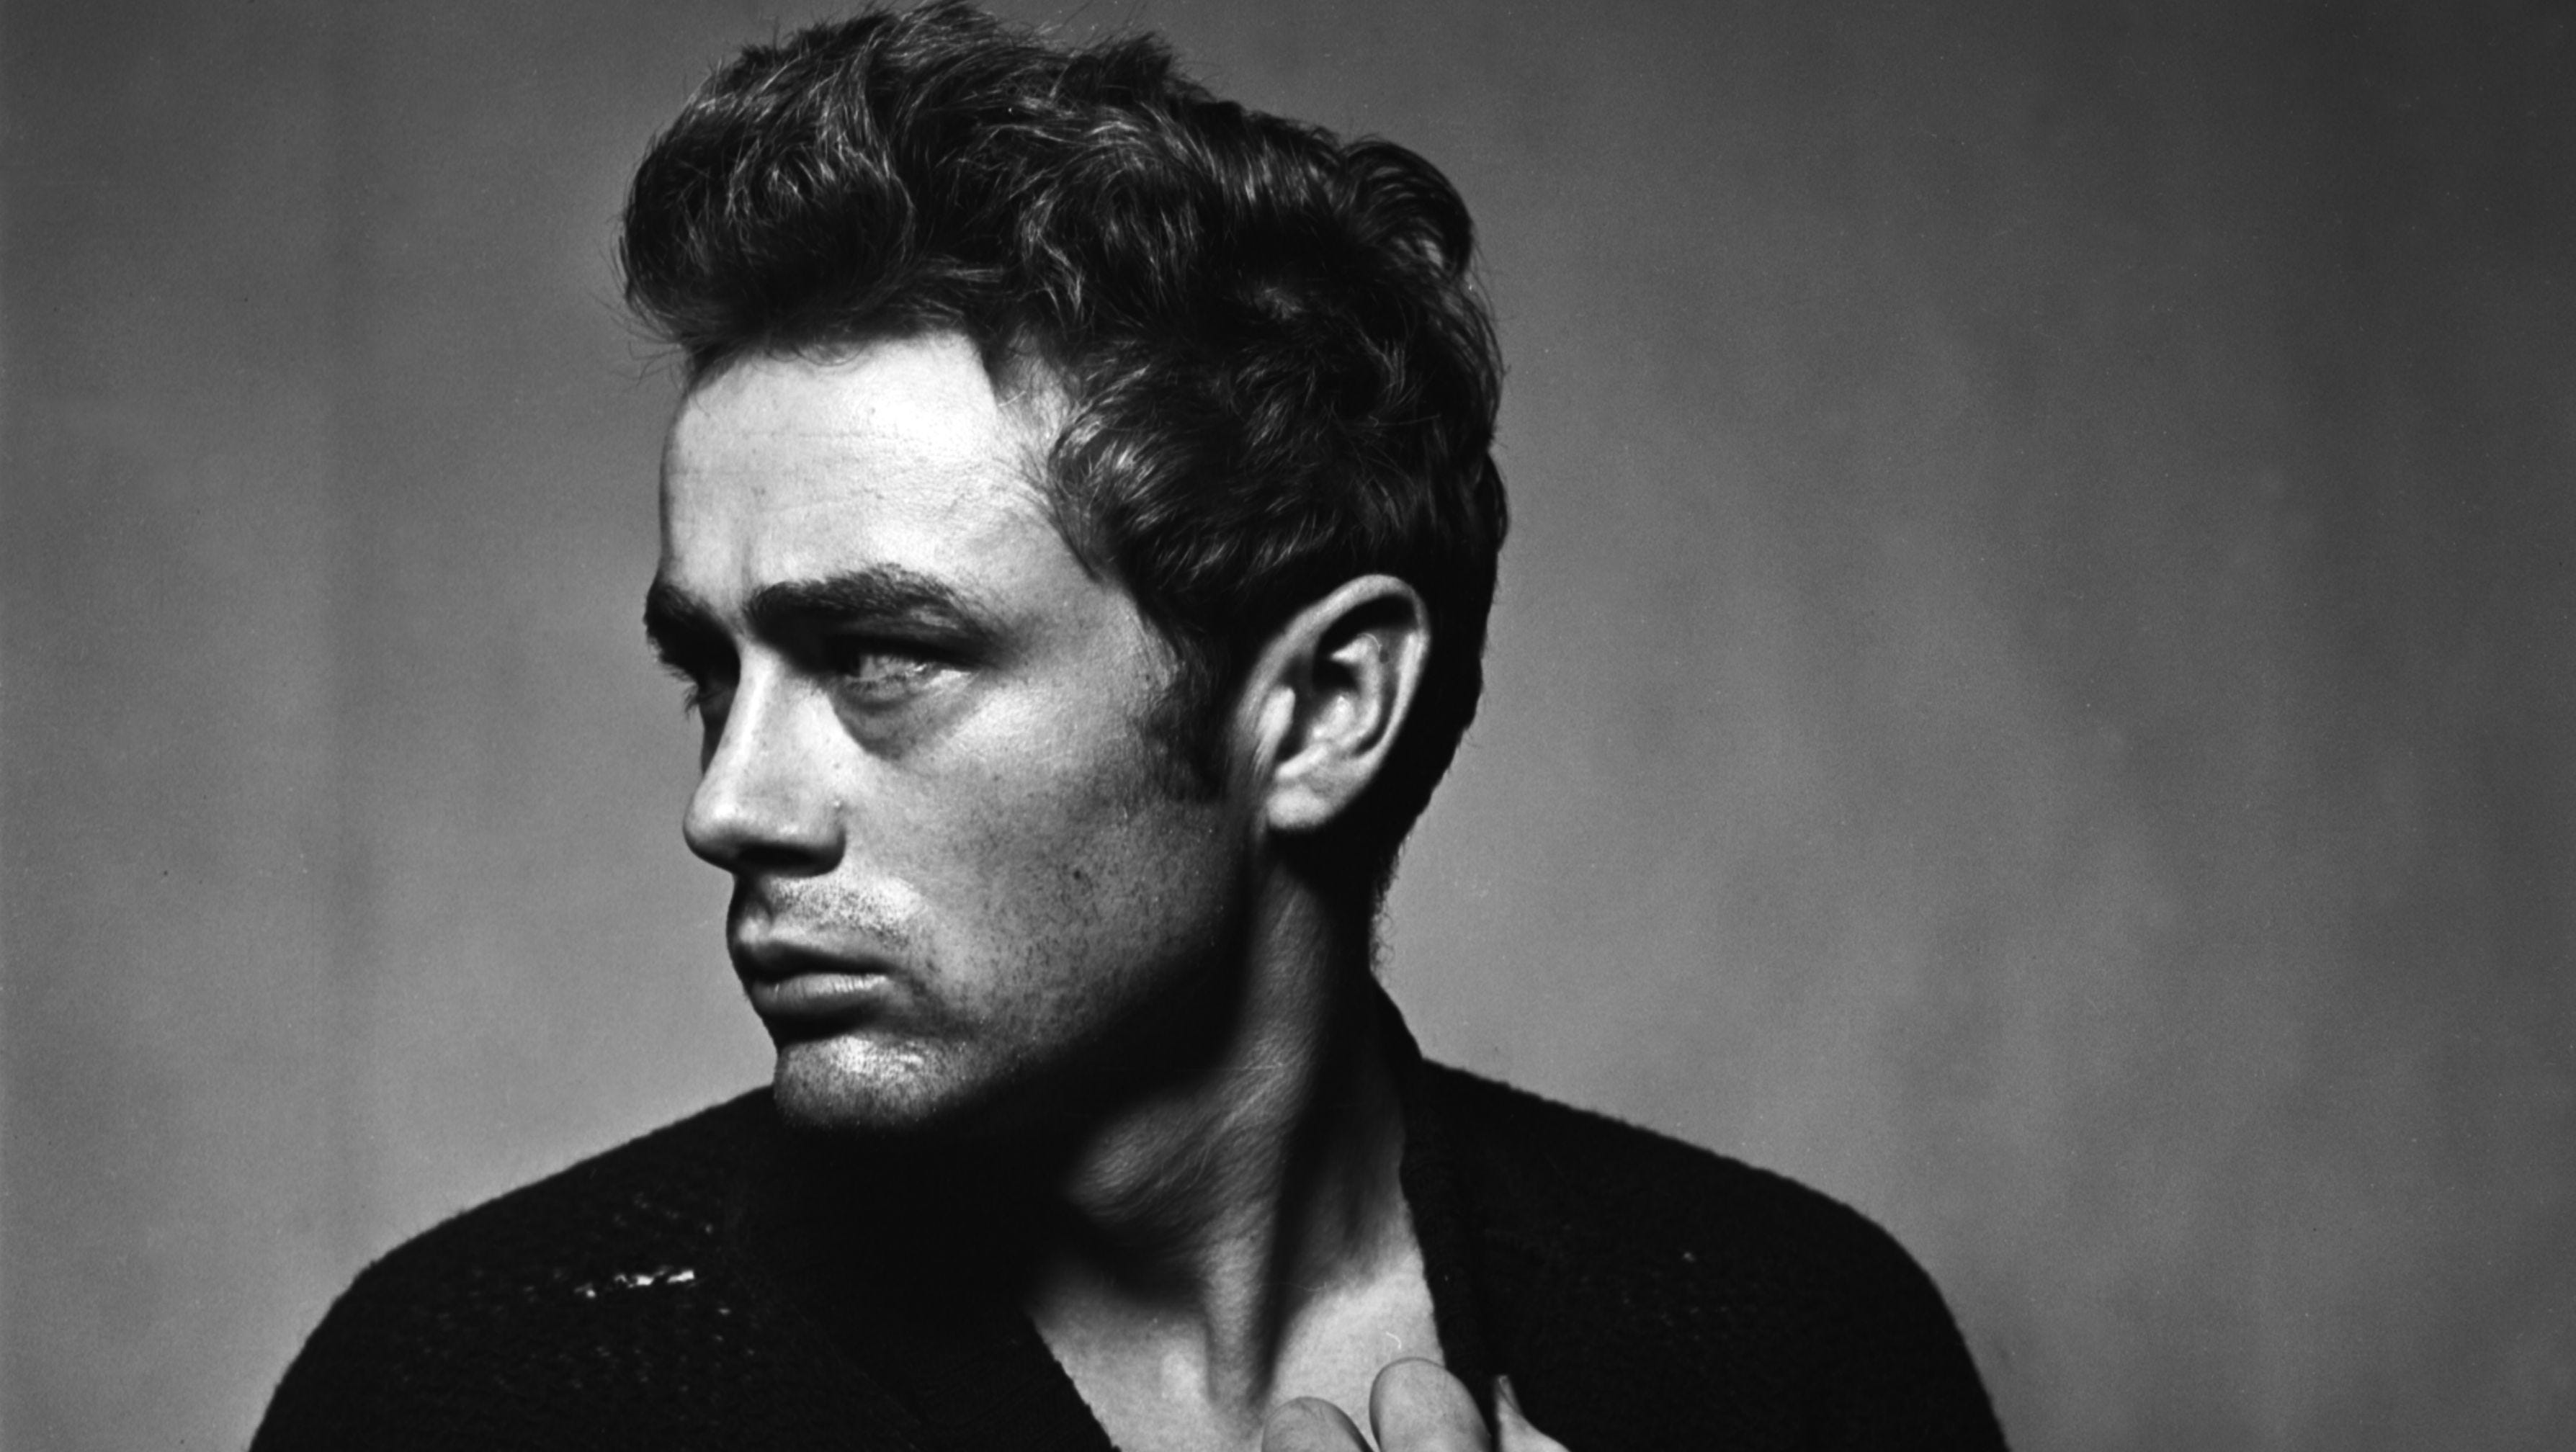 Retro Indy: James Dean was a cultural icon